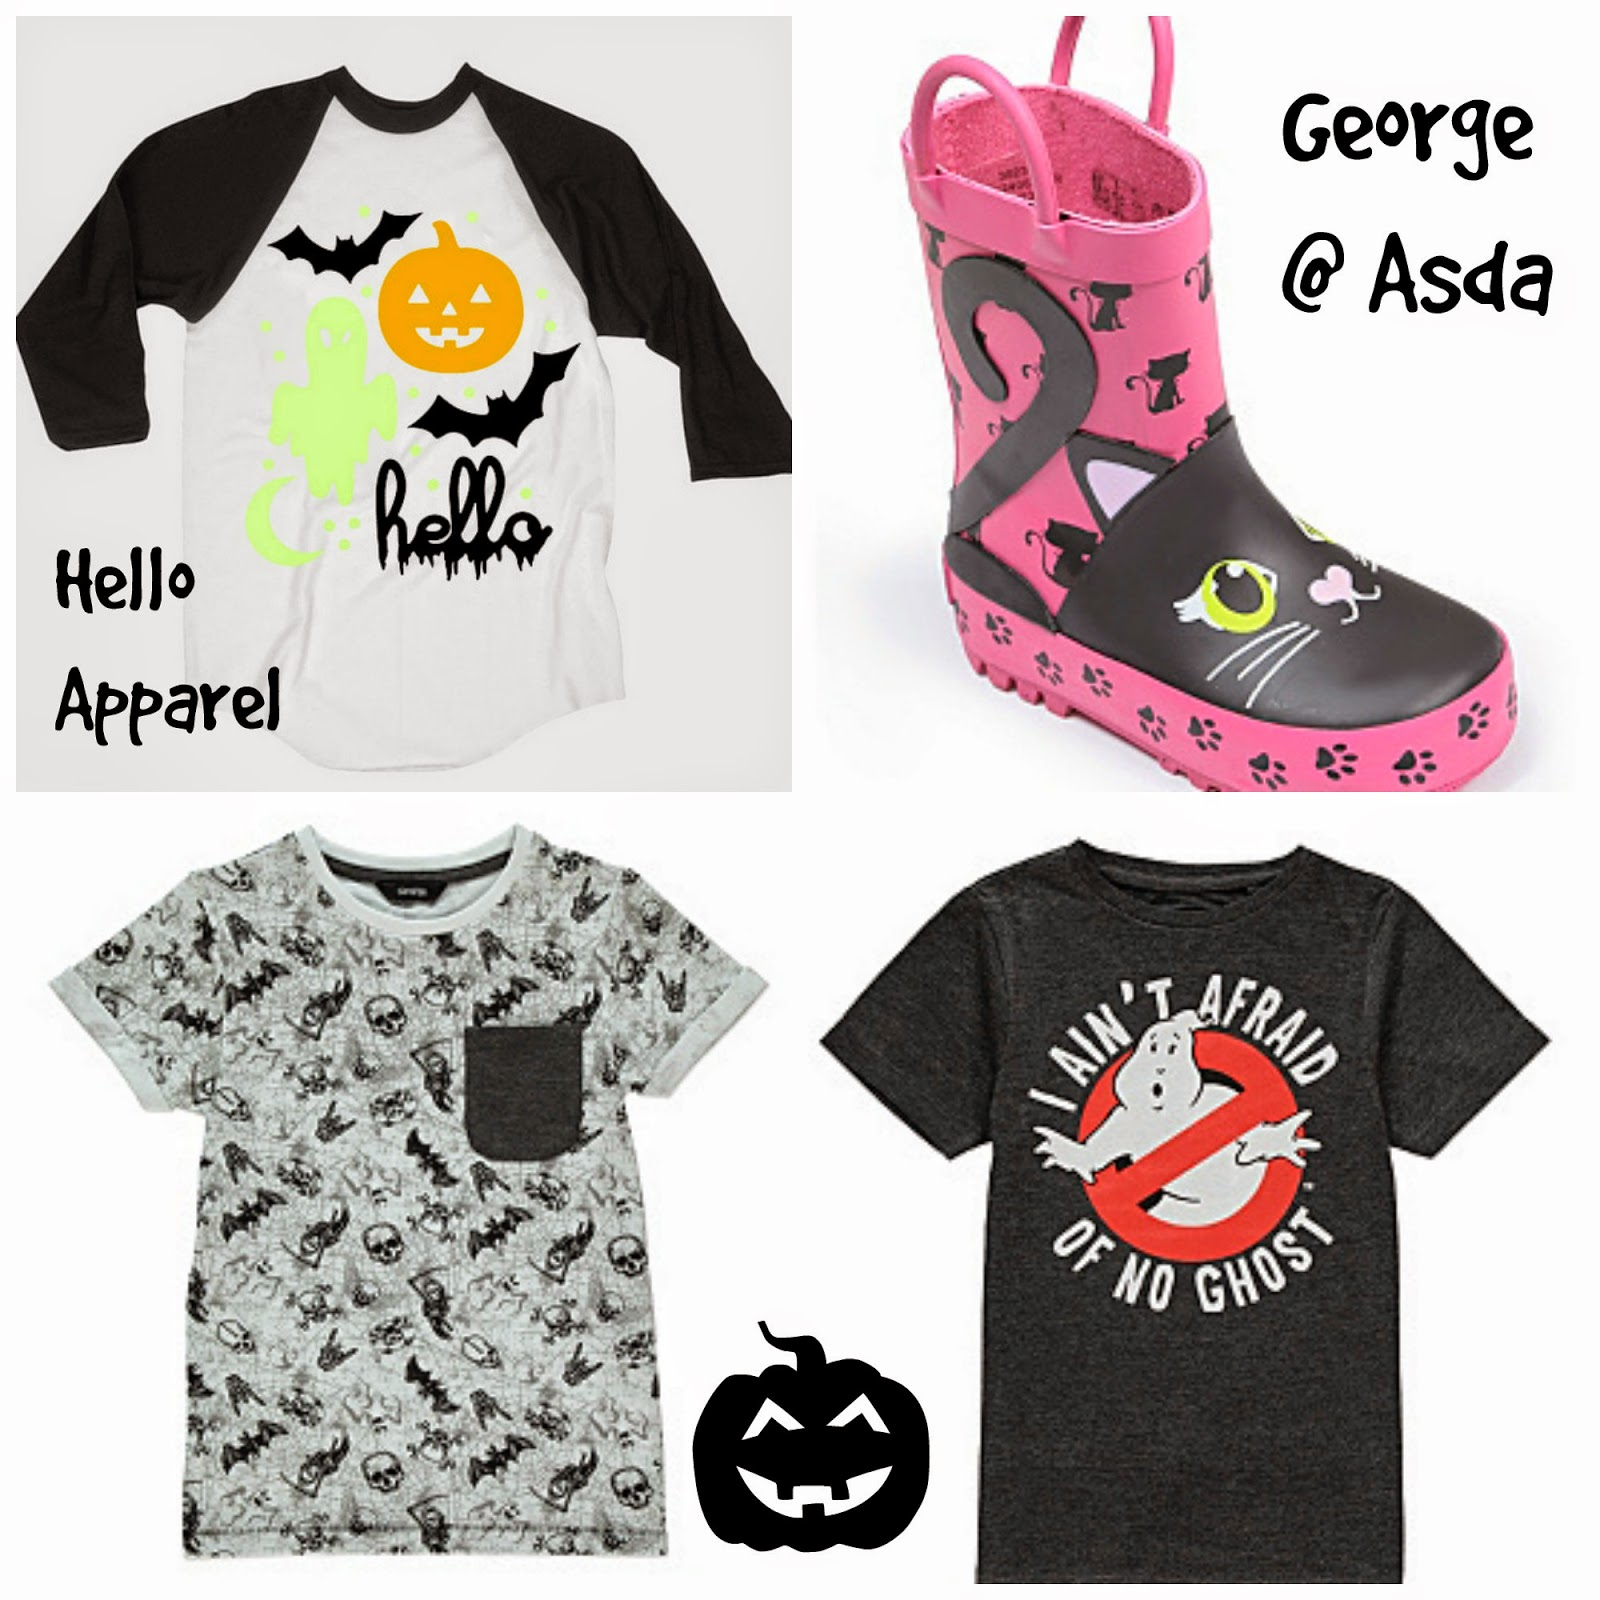 Kids Halloween Fashion Hello Apparel George at Asda